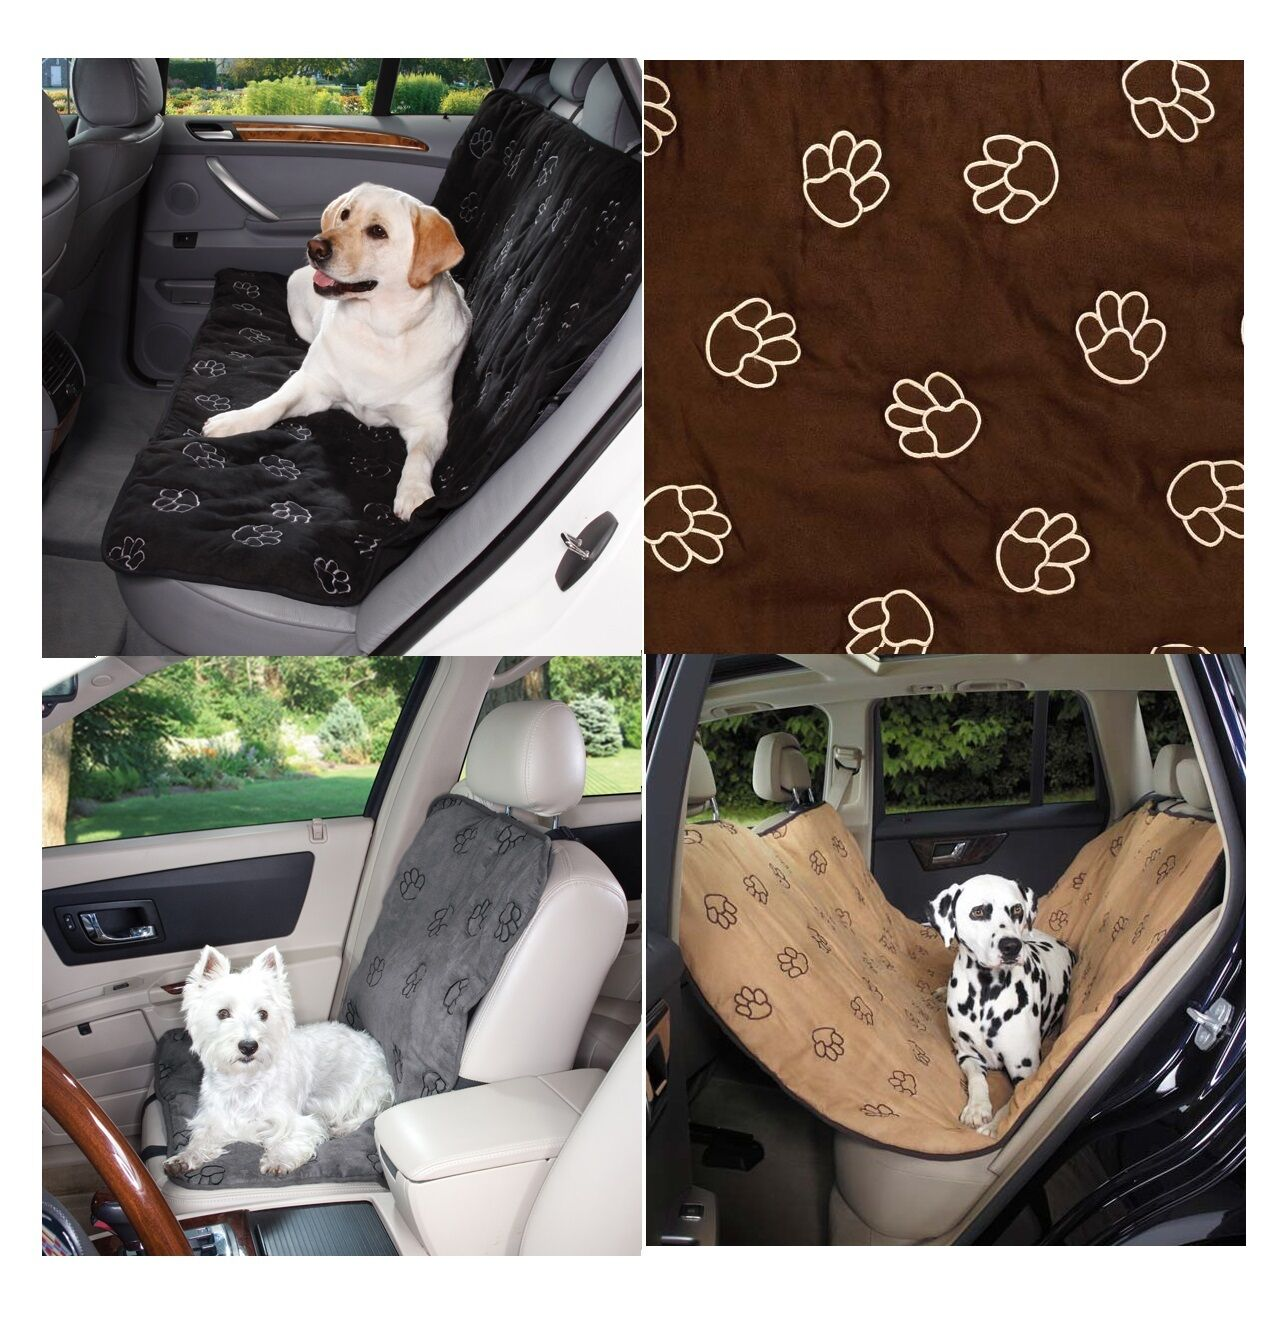 Pawprint Car Seat Covers For Traveling Pups Dogs